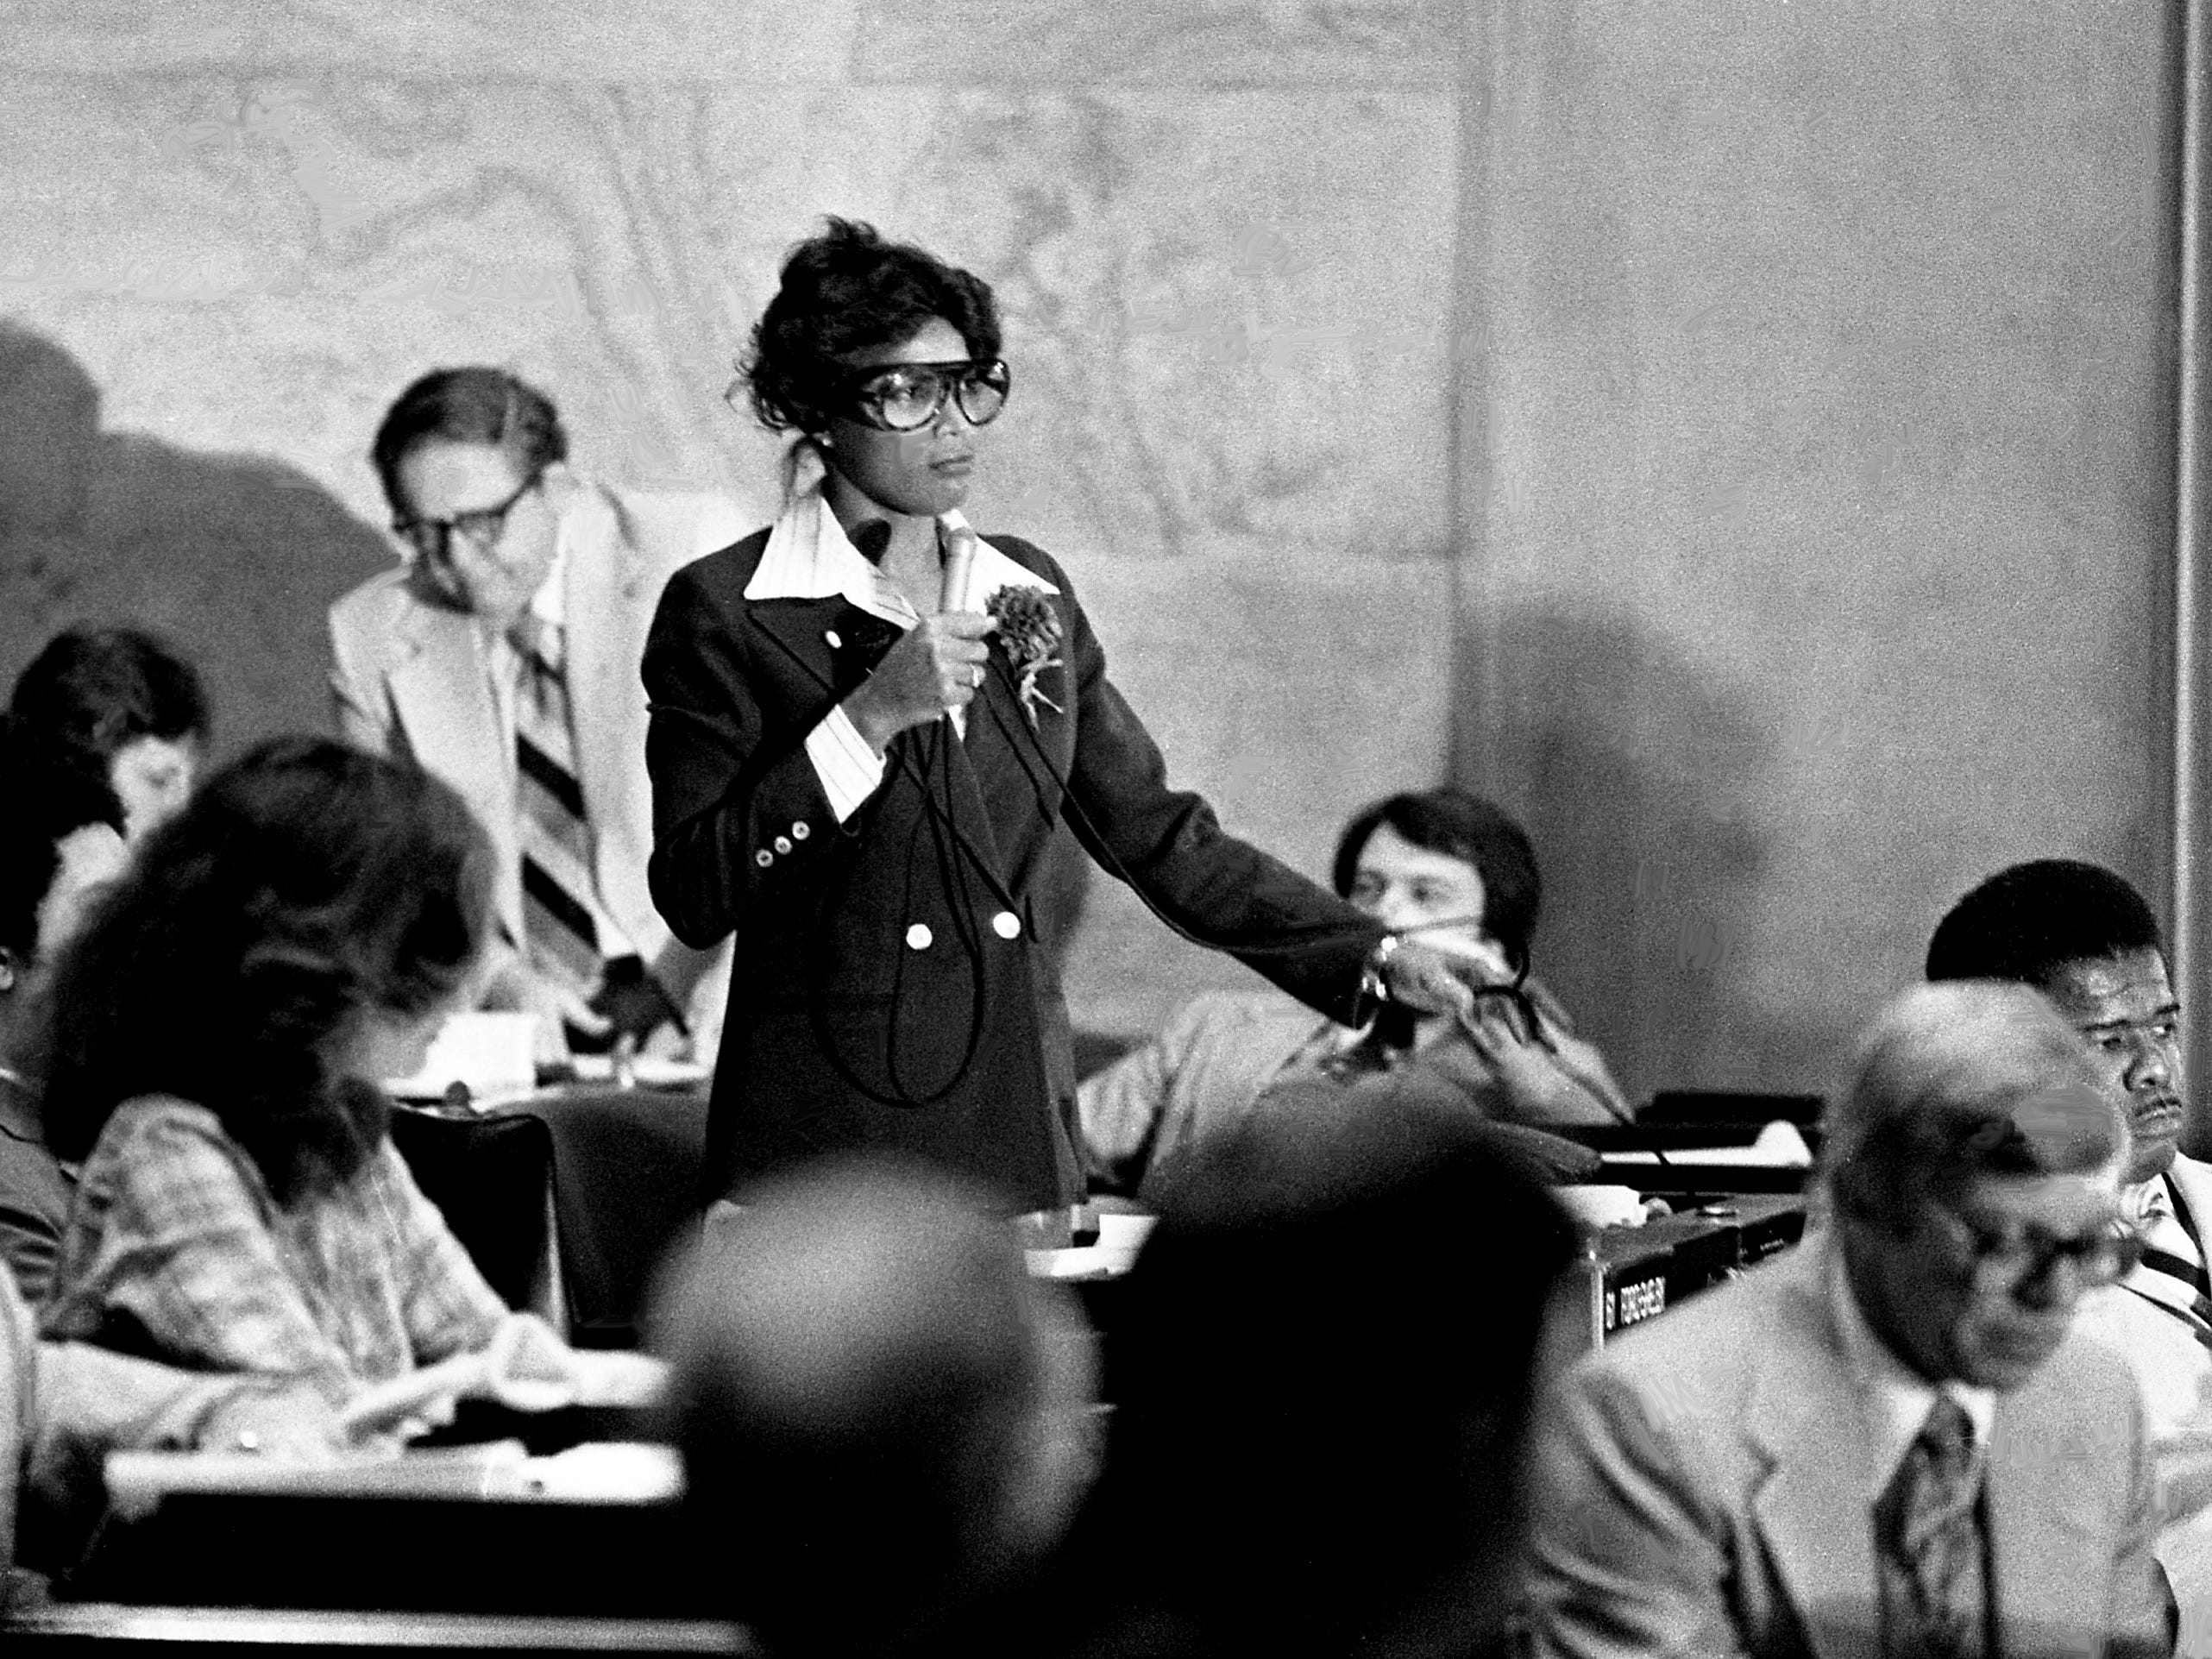 """Rep. Lois DeBerry, D-Memphis, center, argues that legislation providing the death penalty in Tennessee by lethal injection is """"a bad bill"""" before members at the state Capitol on April 11, 1979. The House voted 60-29 to return the legislation to the committee, effectively ending debate on the subject this session."""